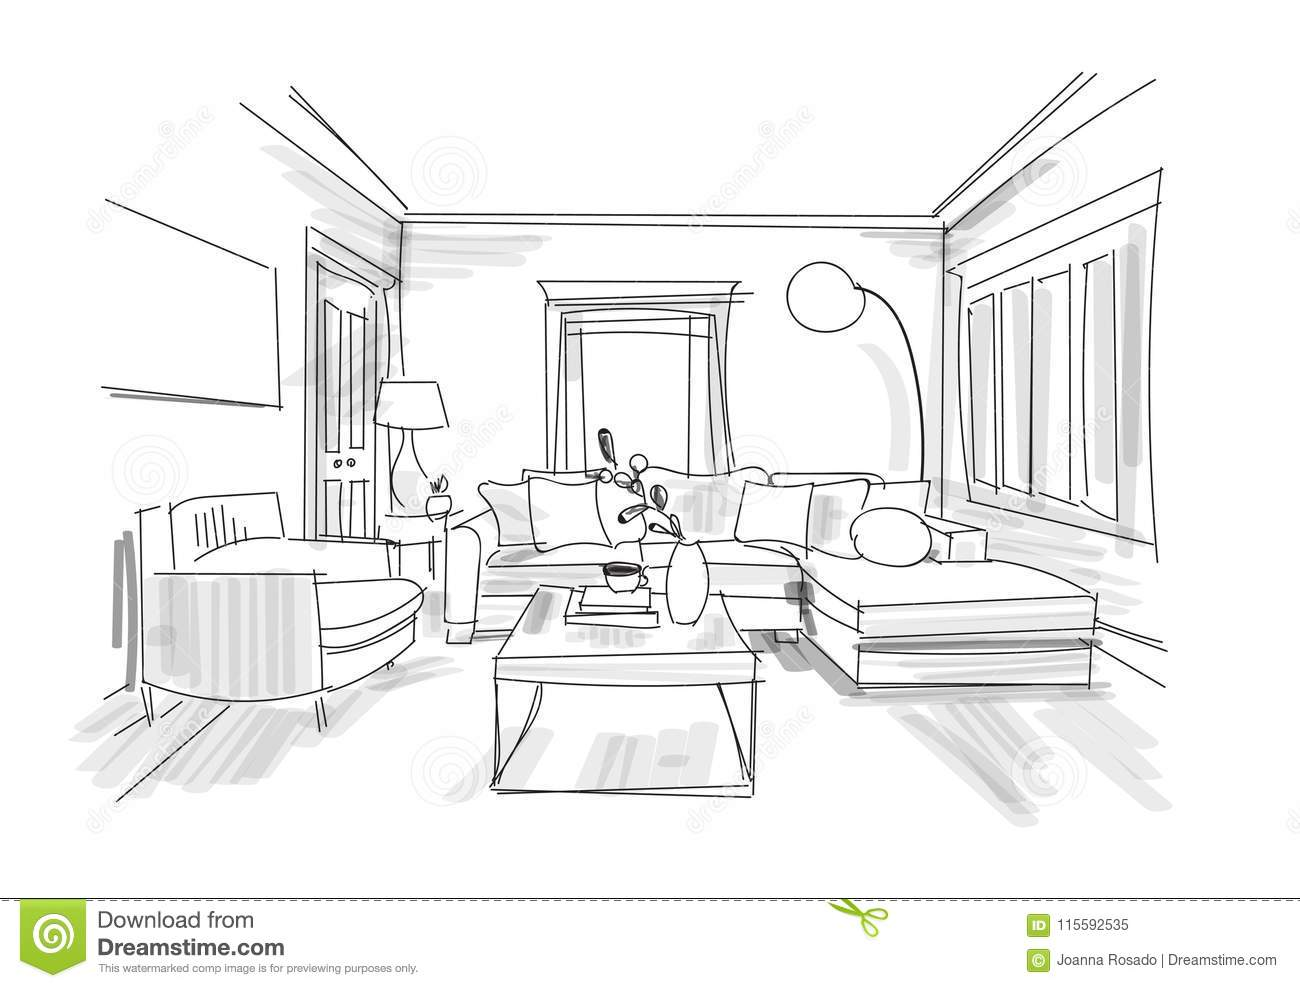 Interior Design Watercolor Illustration Living Room Furniture Stock Vector Illustration Of Chair Drawing 115592535